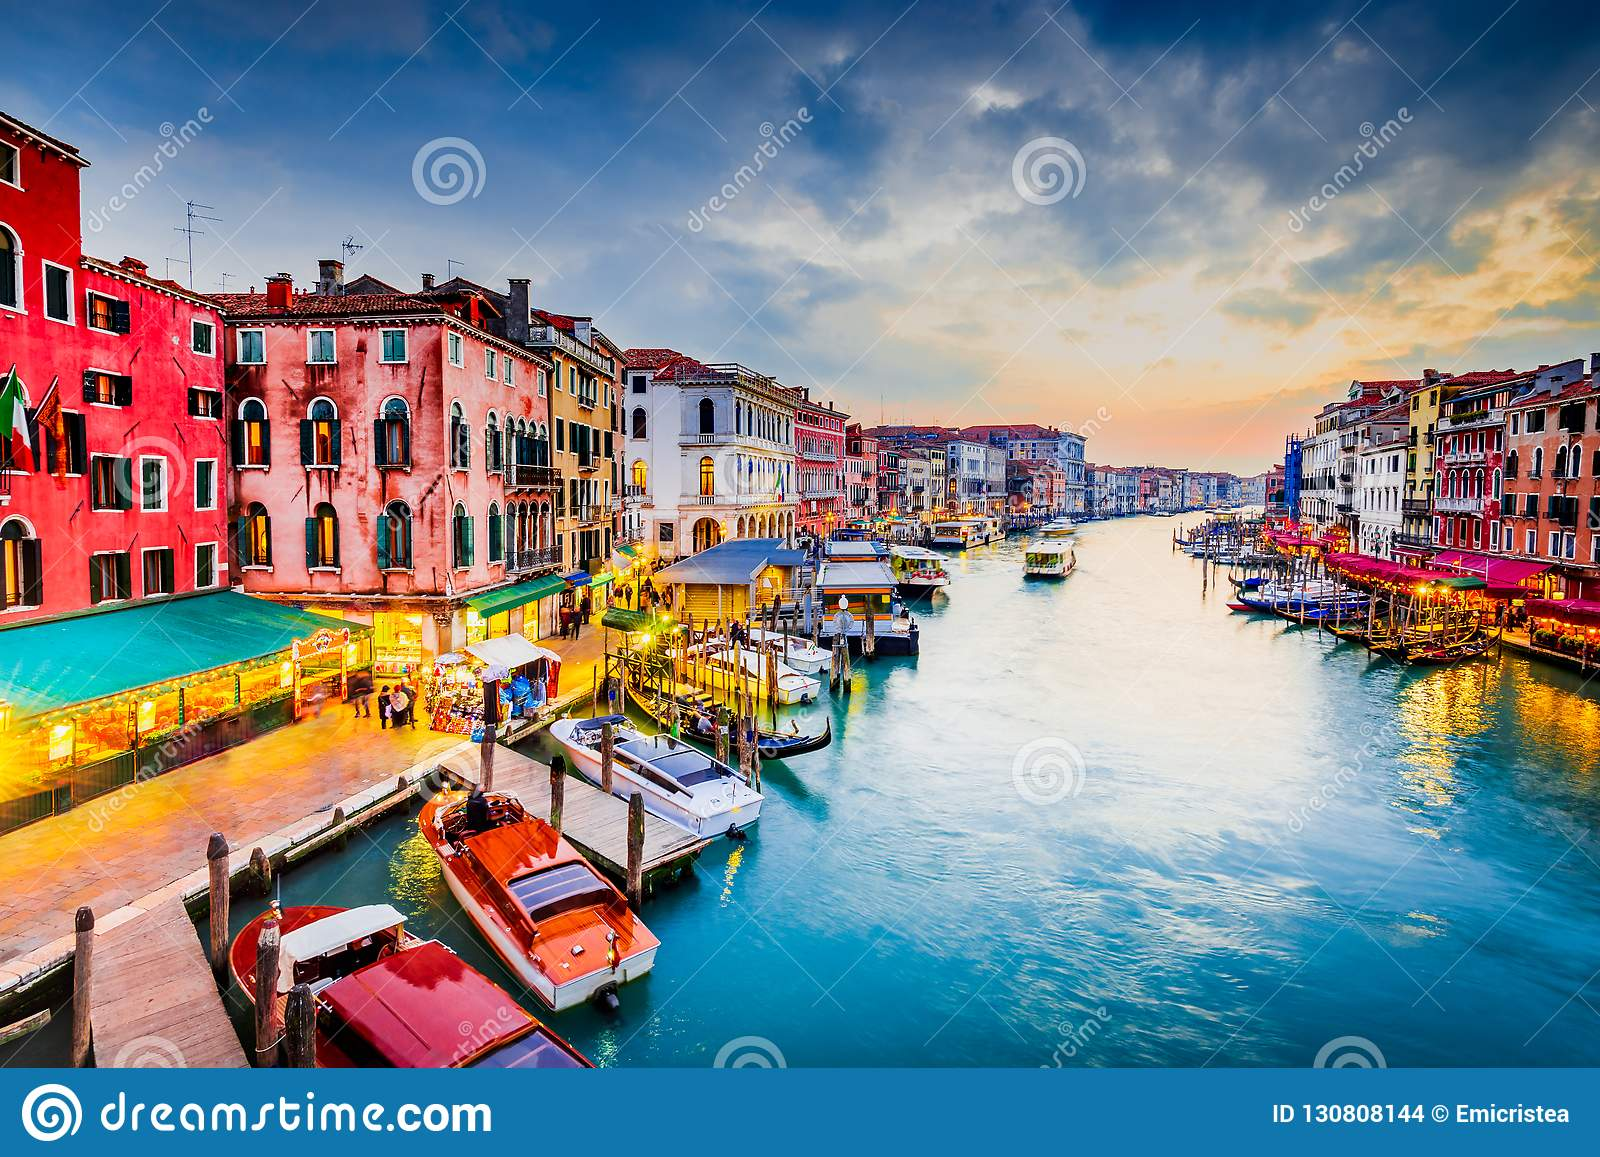 Venice Italy Grand Canal Stock Photo Image Of City